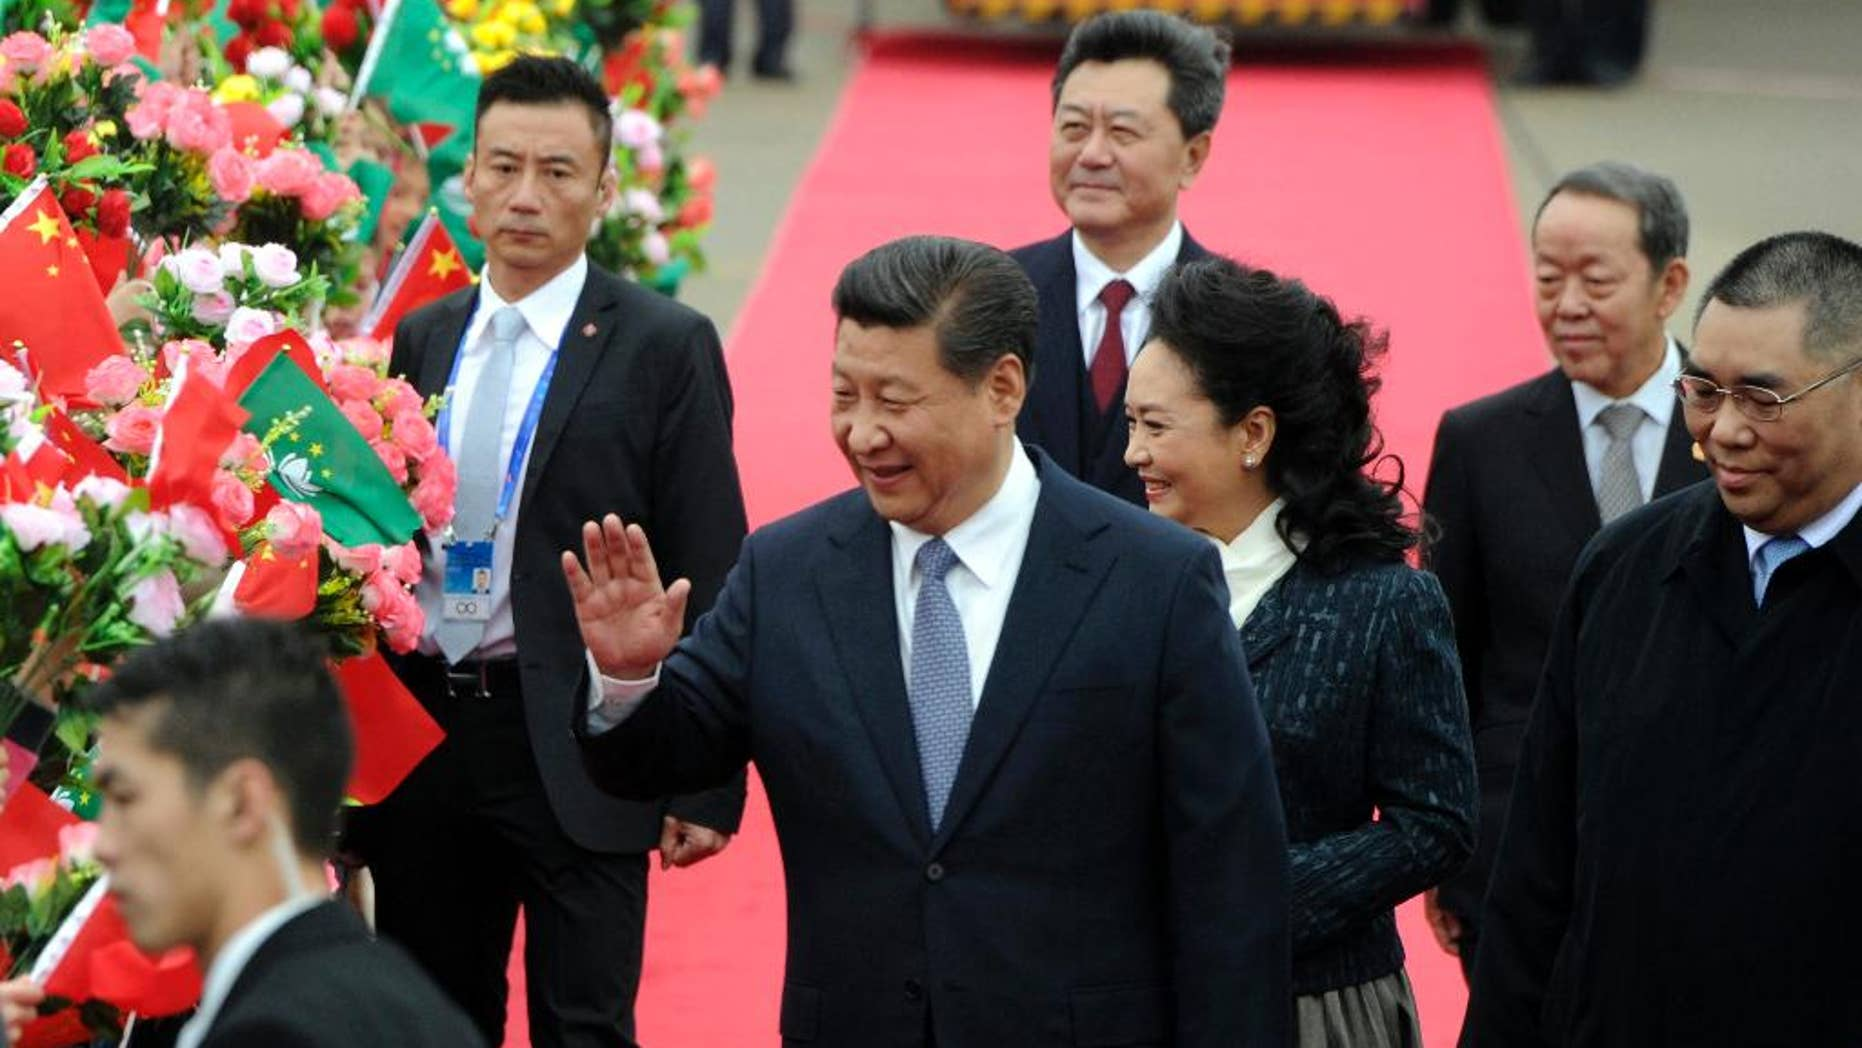 In this photo provided by China's Xinhua News Agency, Chinese President Xi Jinping, center, and his wife Peng Liyuan, center right,  wave as they arrive at the international airport in Macau, south China, Friday, Dec. 19, 2014. Chinese President Xi is in Macau to attend celebrations marking the 15th anniversary of its return to China which falls on Saturday, Xinhua reported. (AP Photo/Xinhua, Cheong Kam Ka) NO SALES